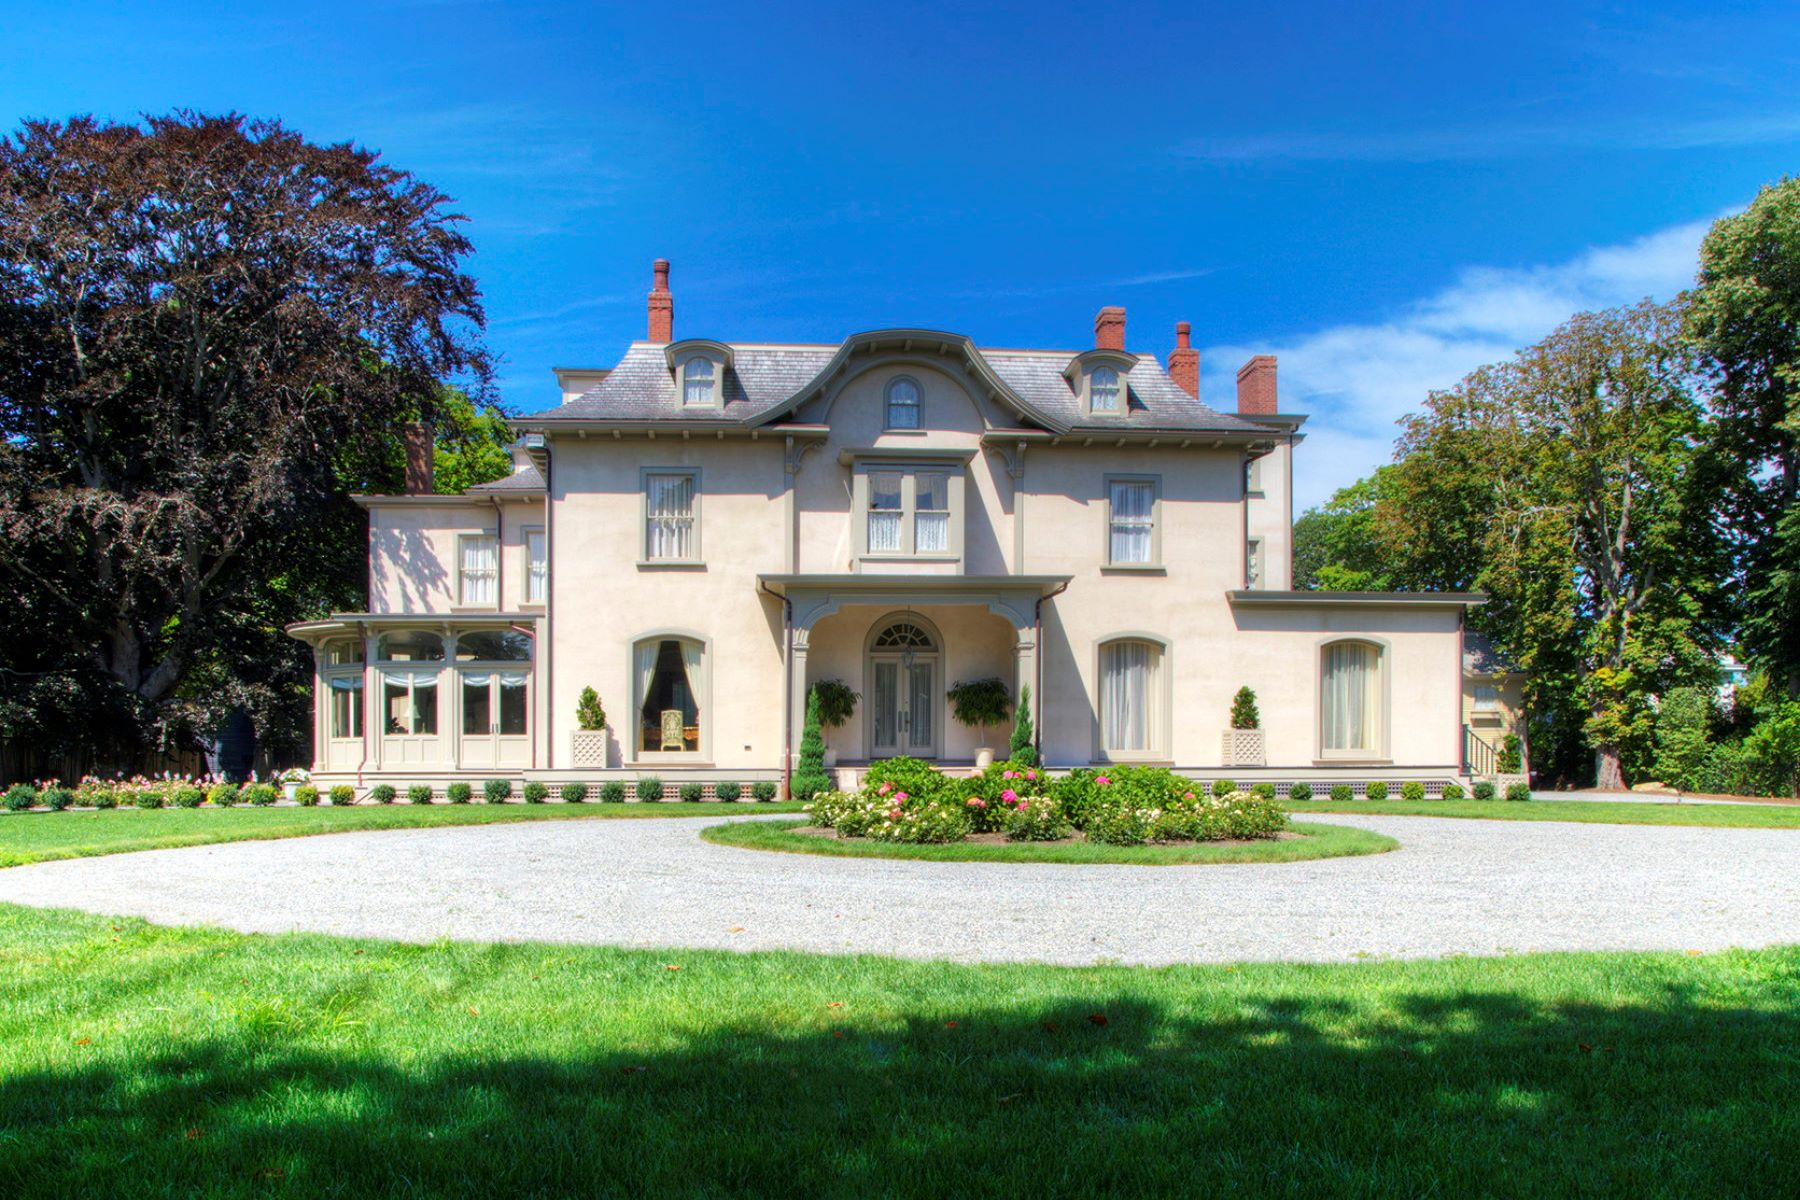 Single Family Home for Sale at Historic Quatrel on Bellevue 673 Bellevue Avenue Newport, Rhode Island 02840 United States